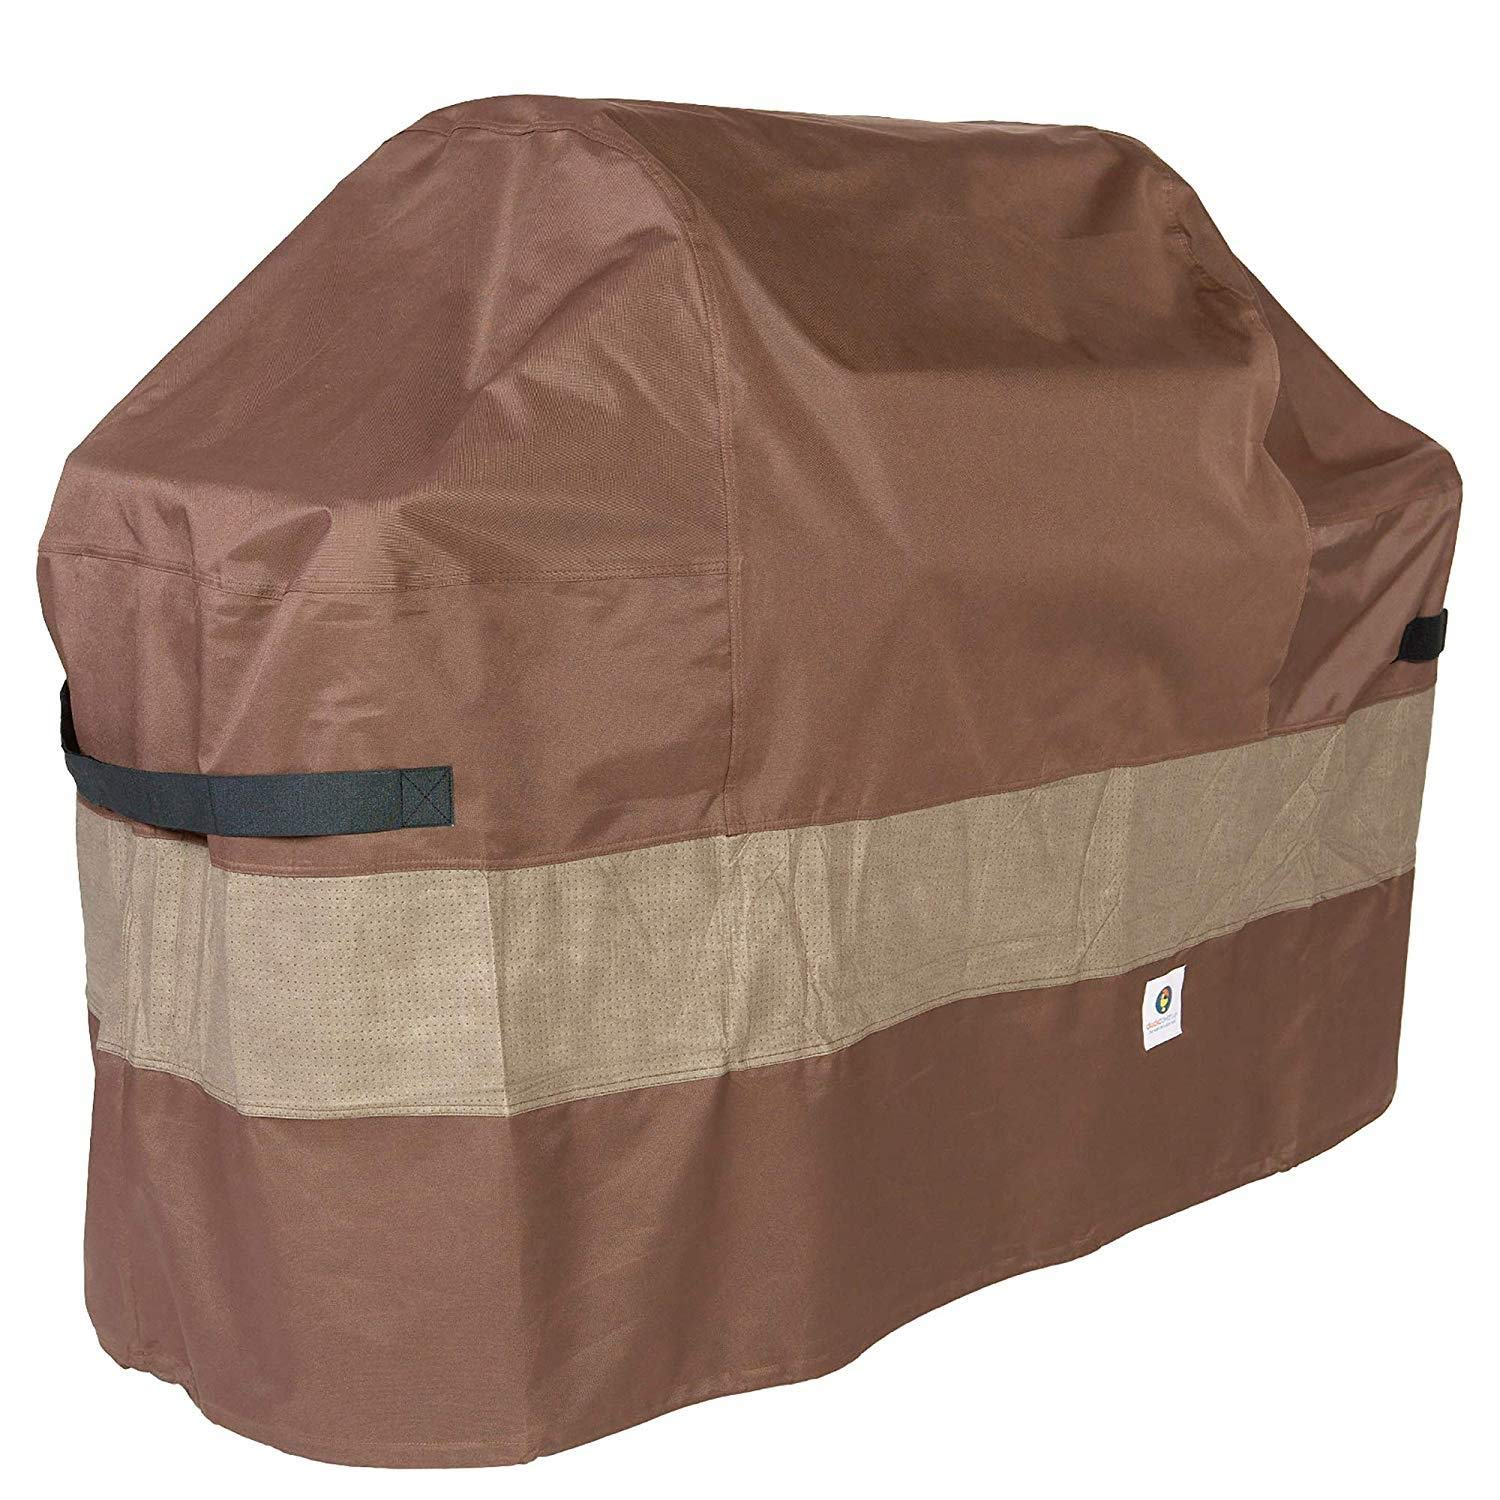 Duck Covers Ultimate BBQ Grill Cover, 61-Inch